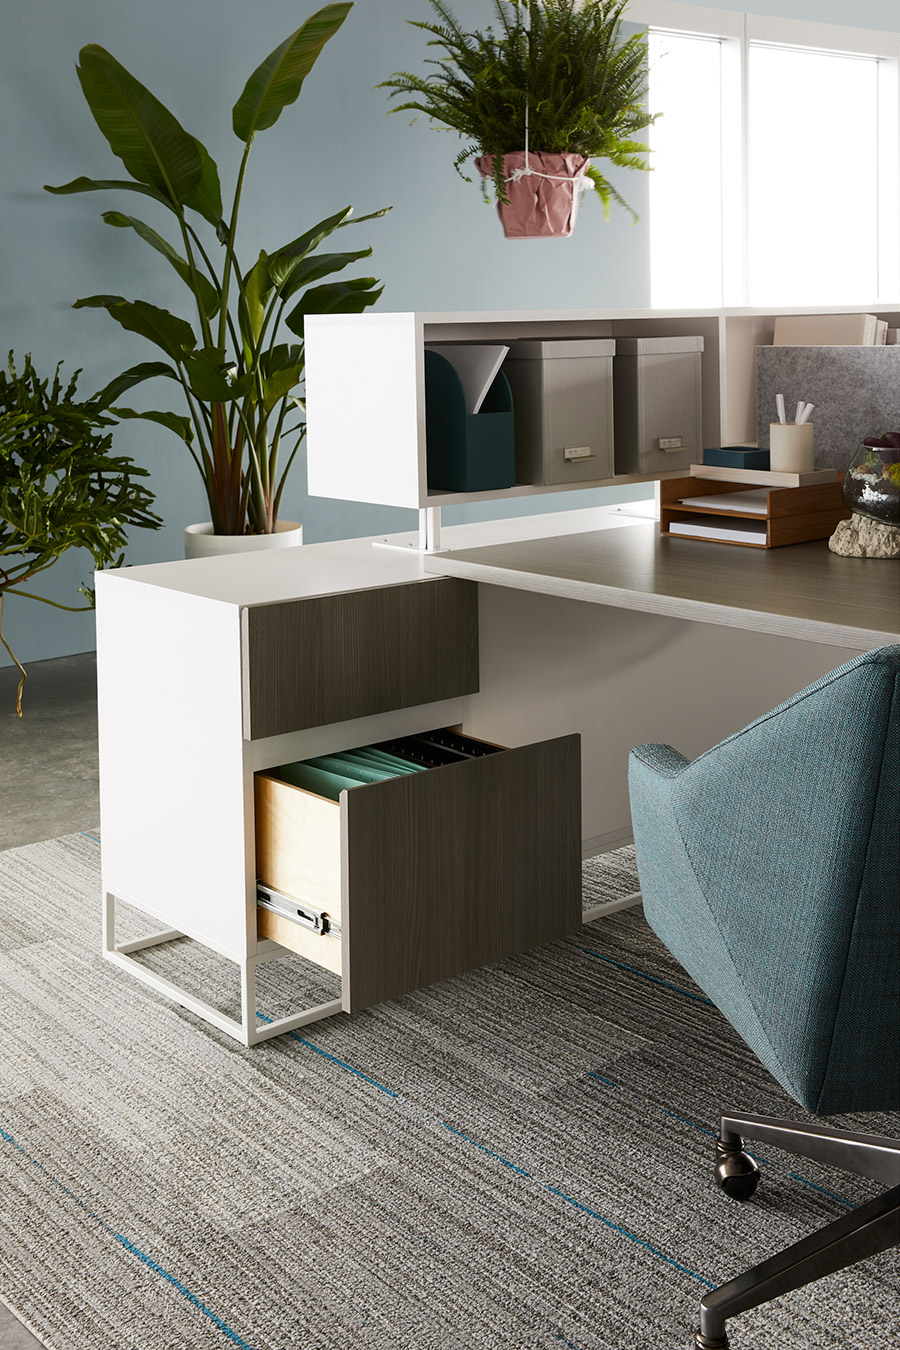 resimercial contract furniture partnerships